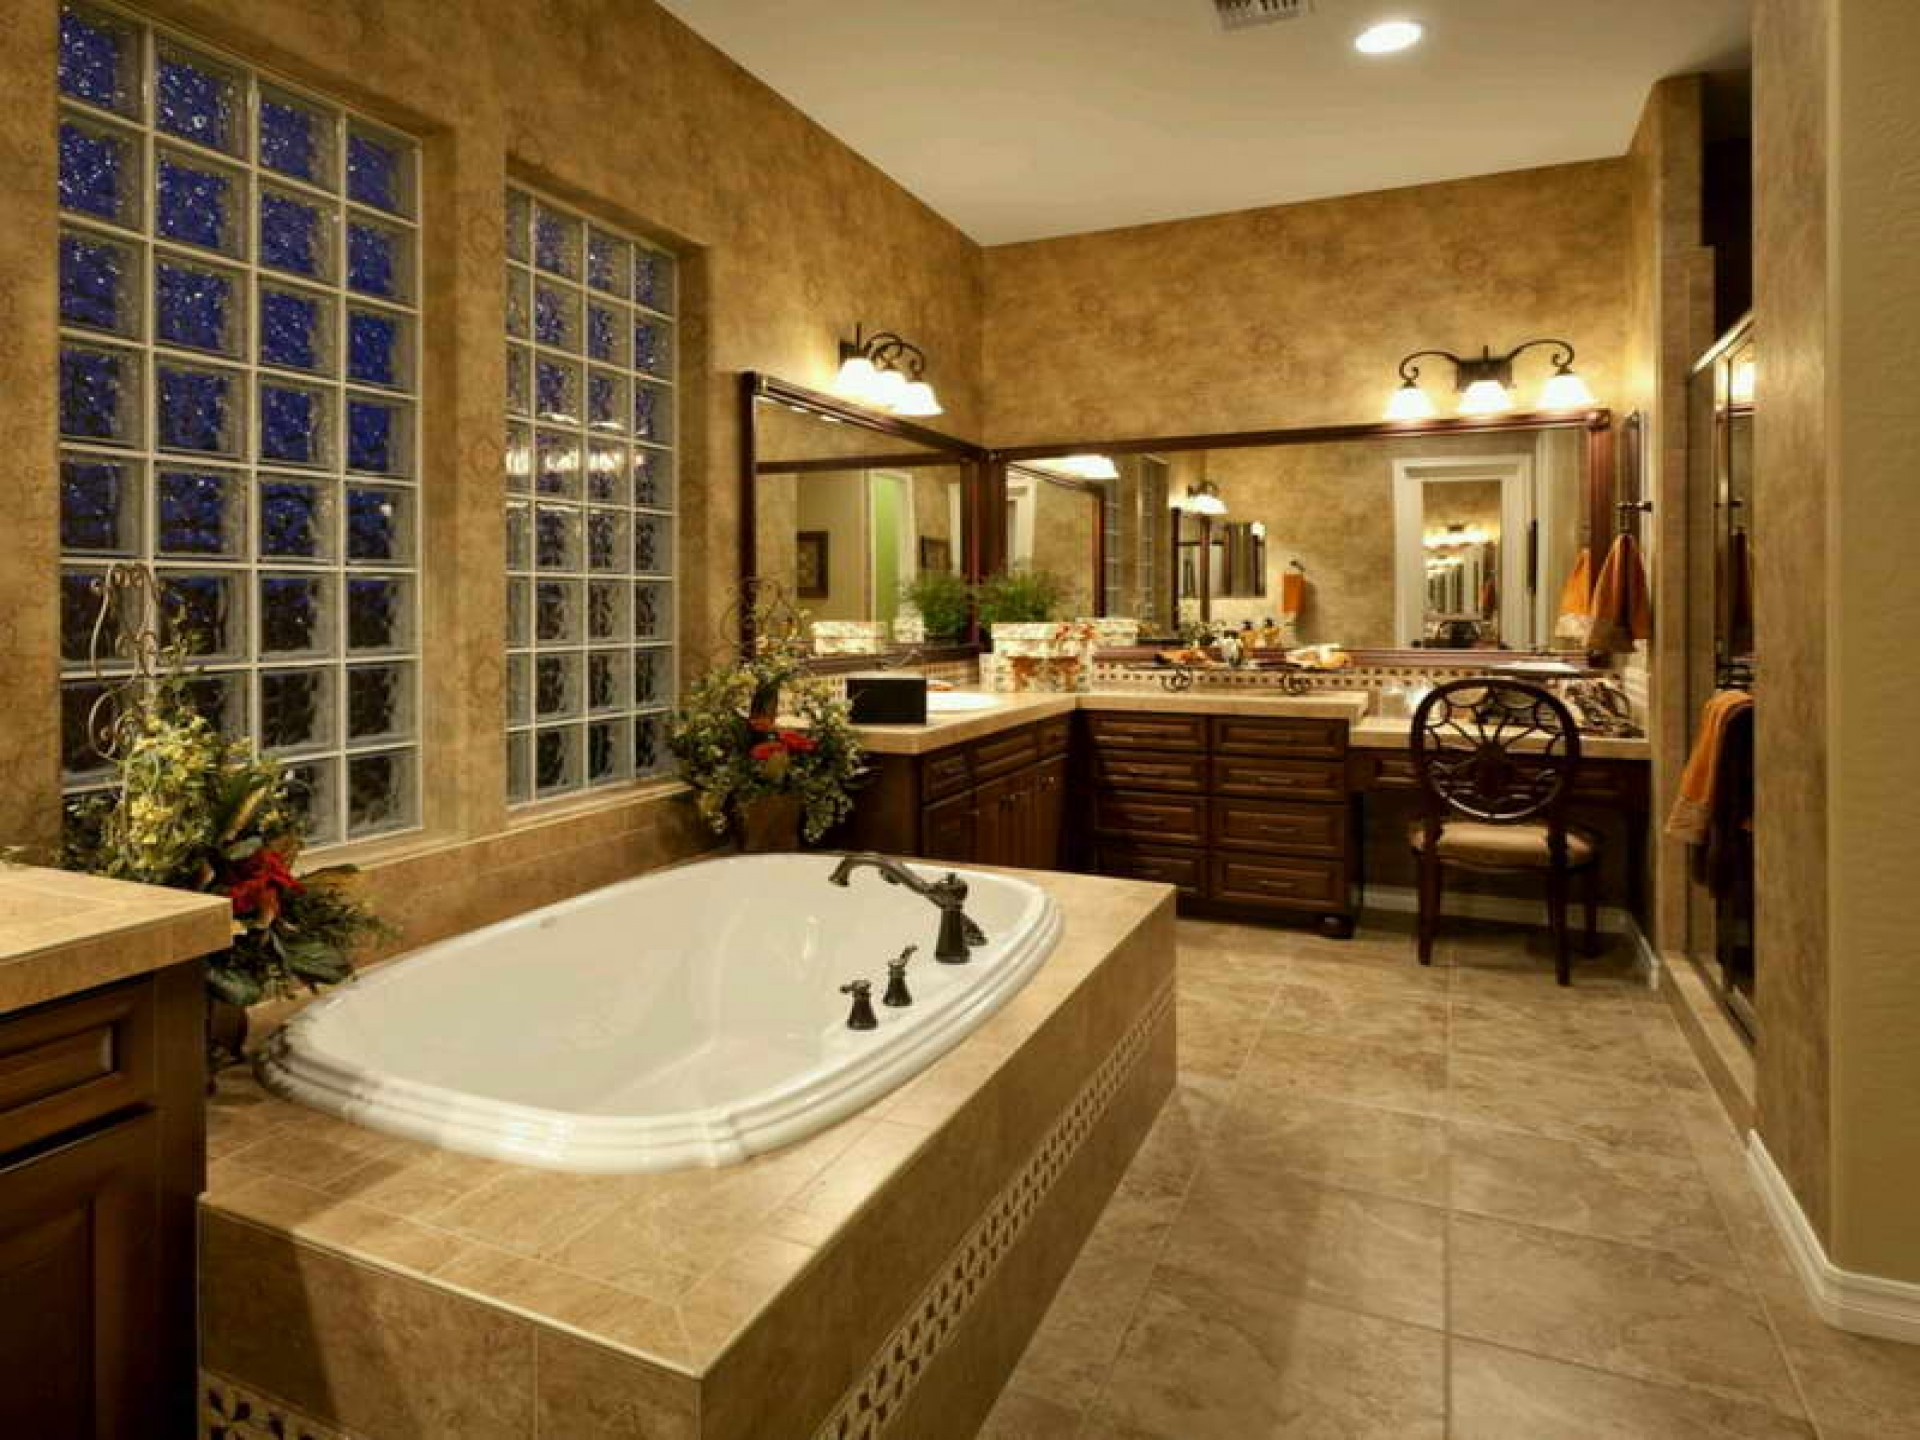 100 amazing bathroom ideas you 39 ll fall in love with for Amazing small bathroom design